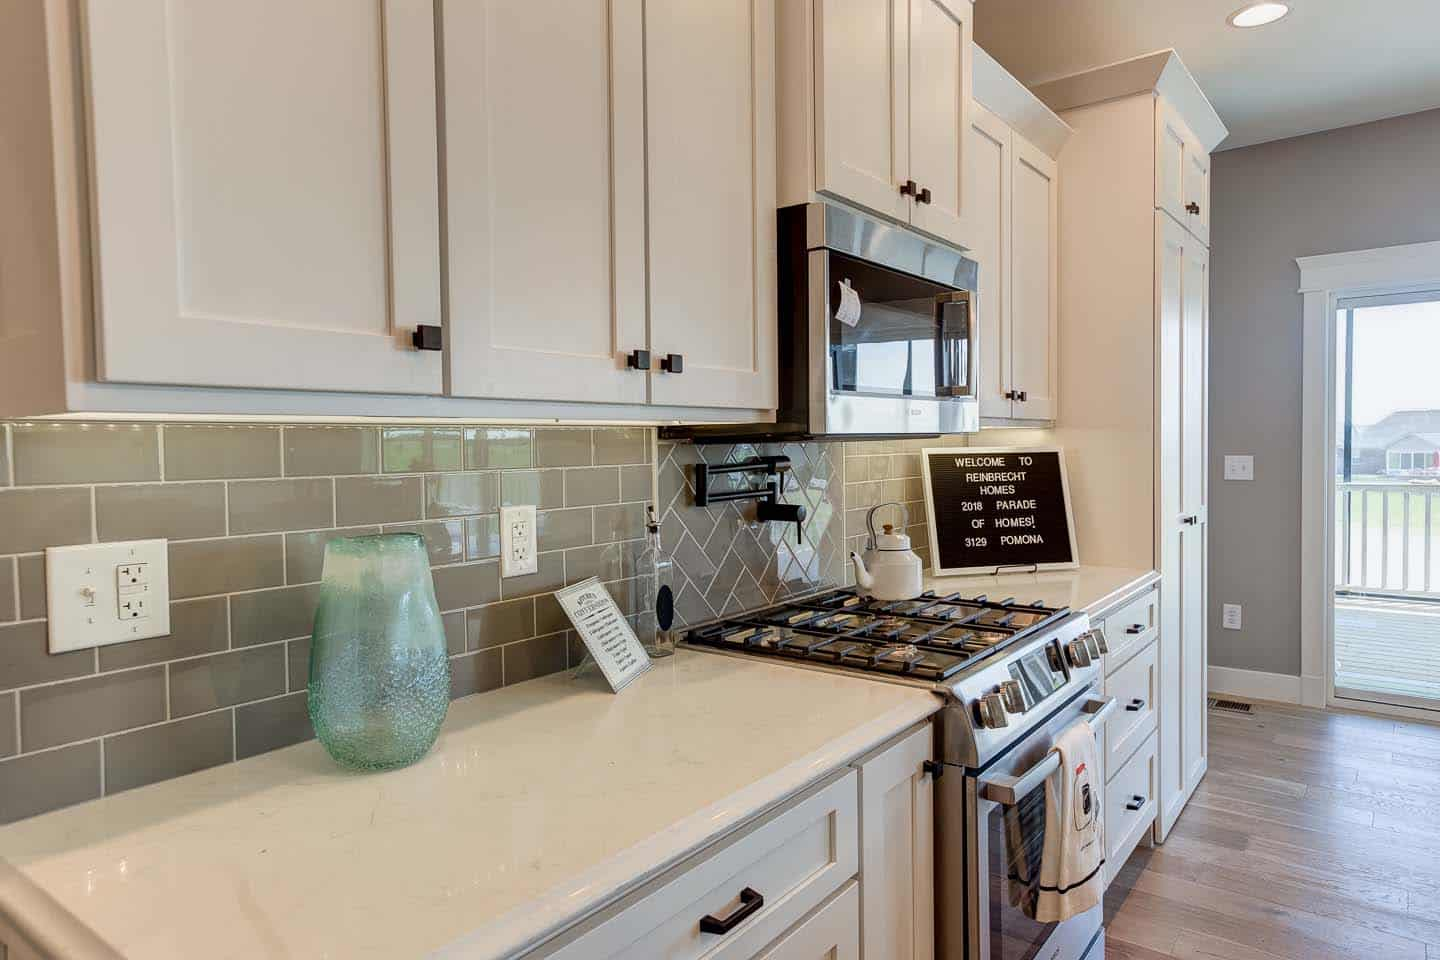 Evansville Parade of Homes | Reinbrecht Homes | Centerra Ridge Lot 156 Granite Countertops